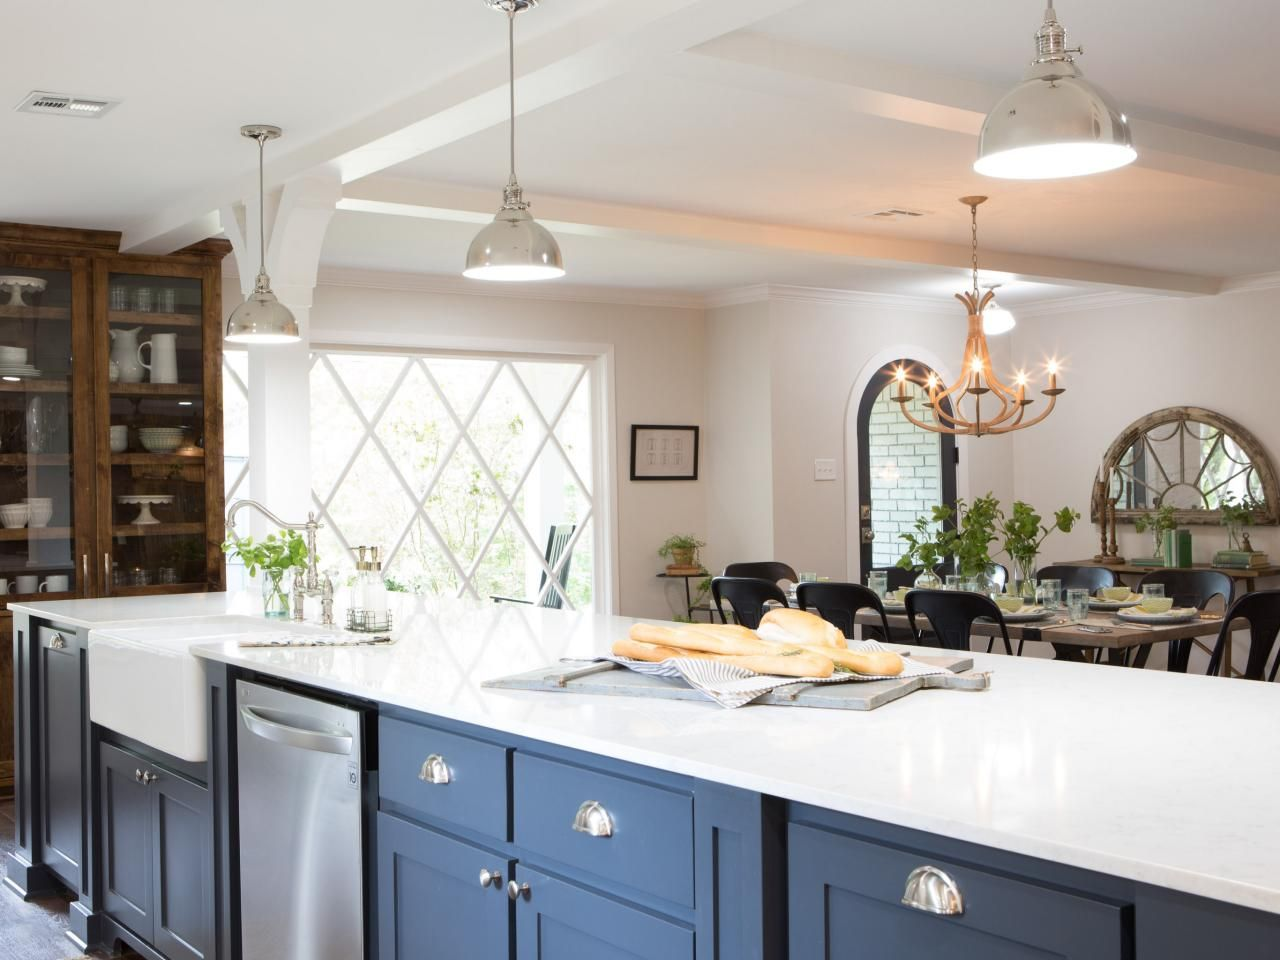 Find the best of Fixer Upper from HGTV | Interior Design & Exterior ...